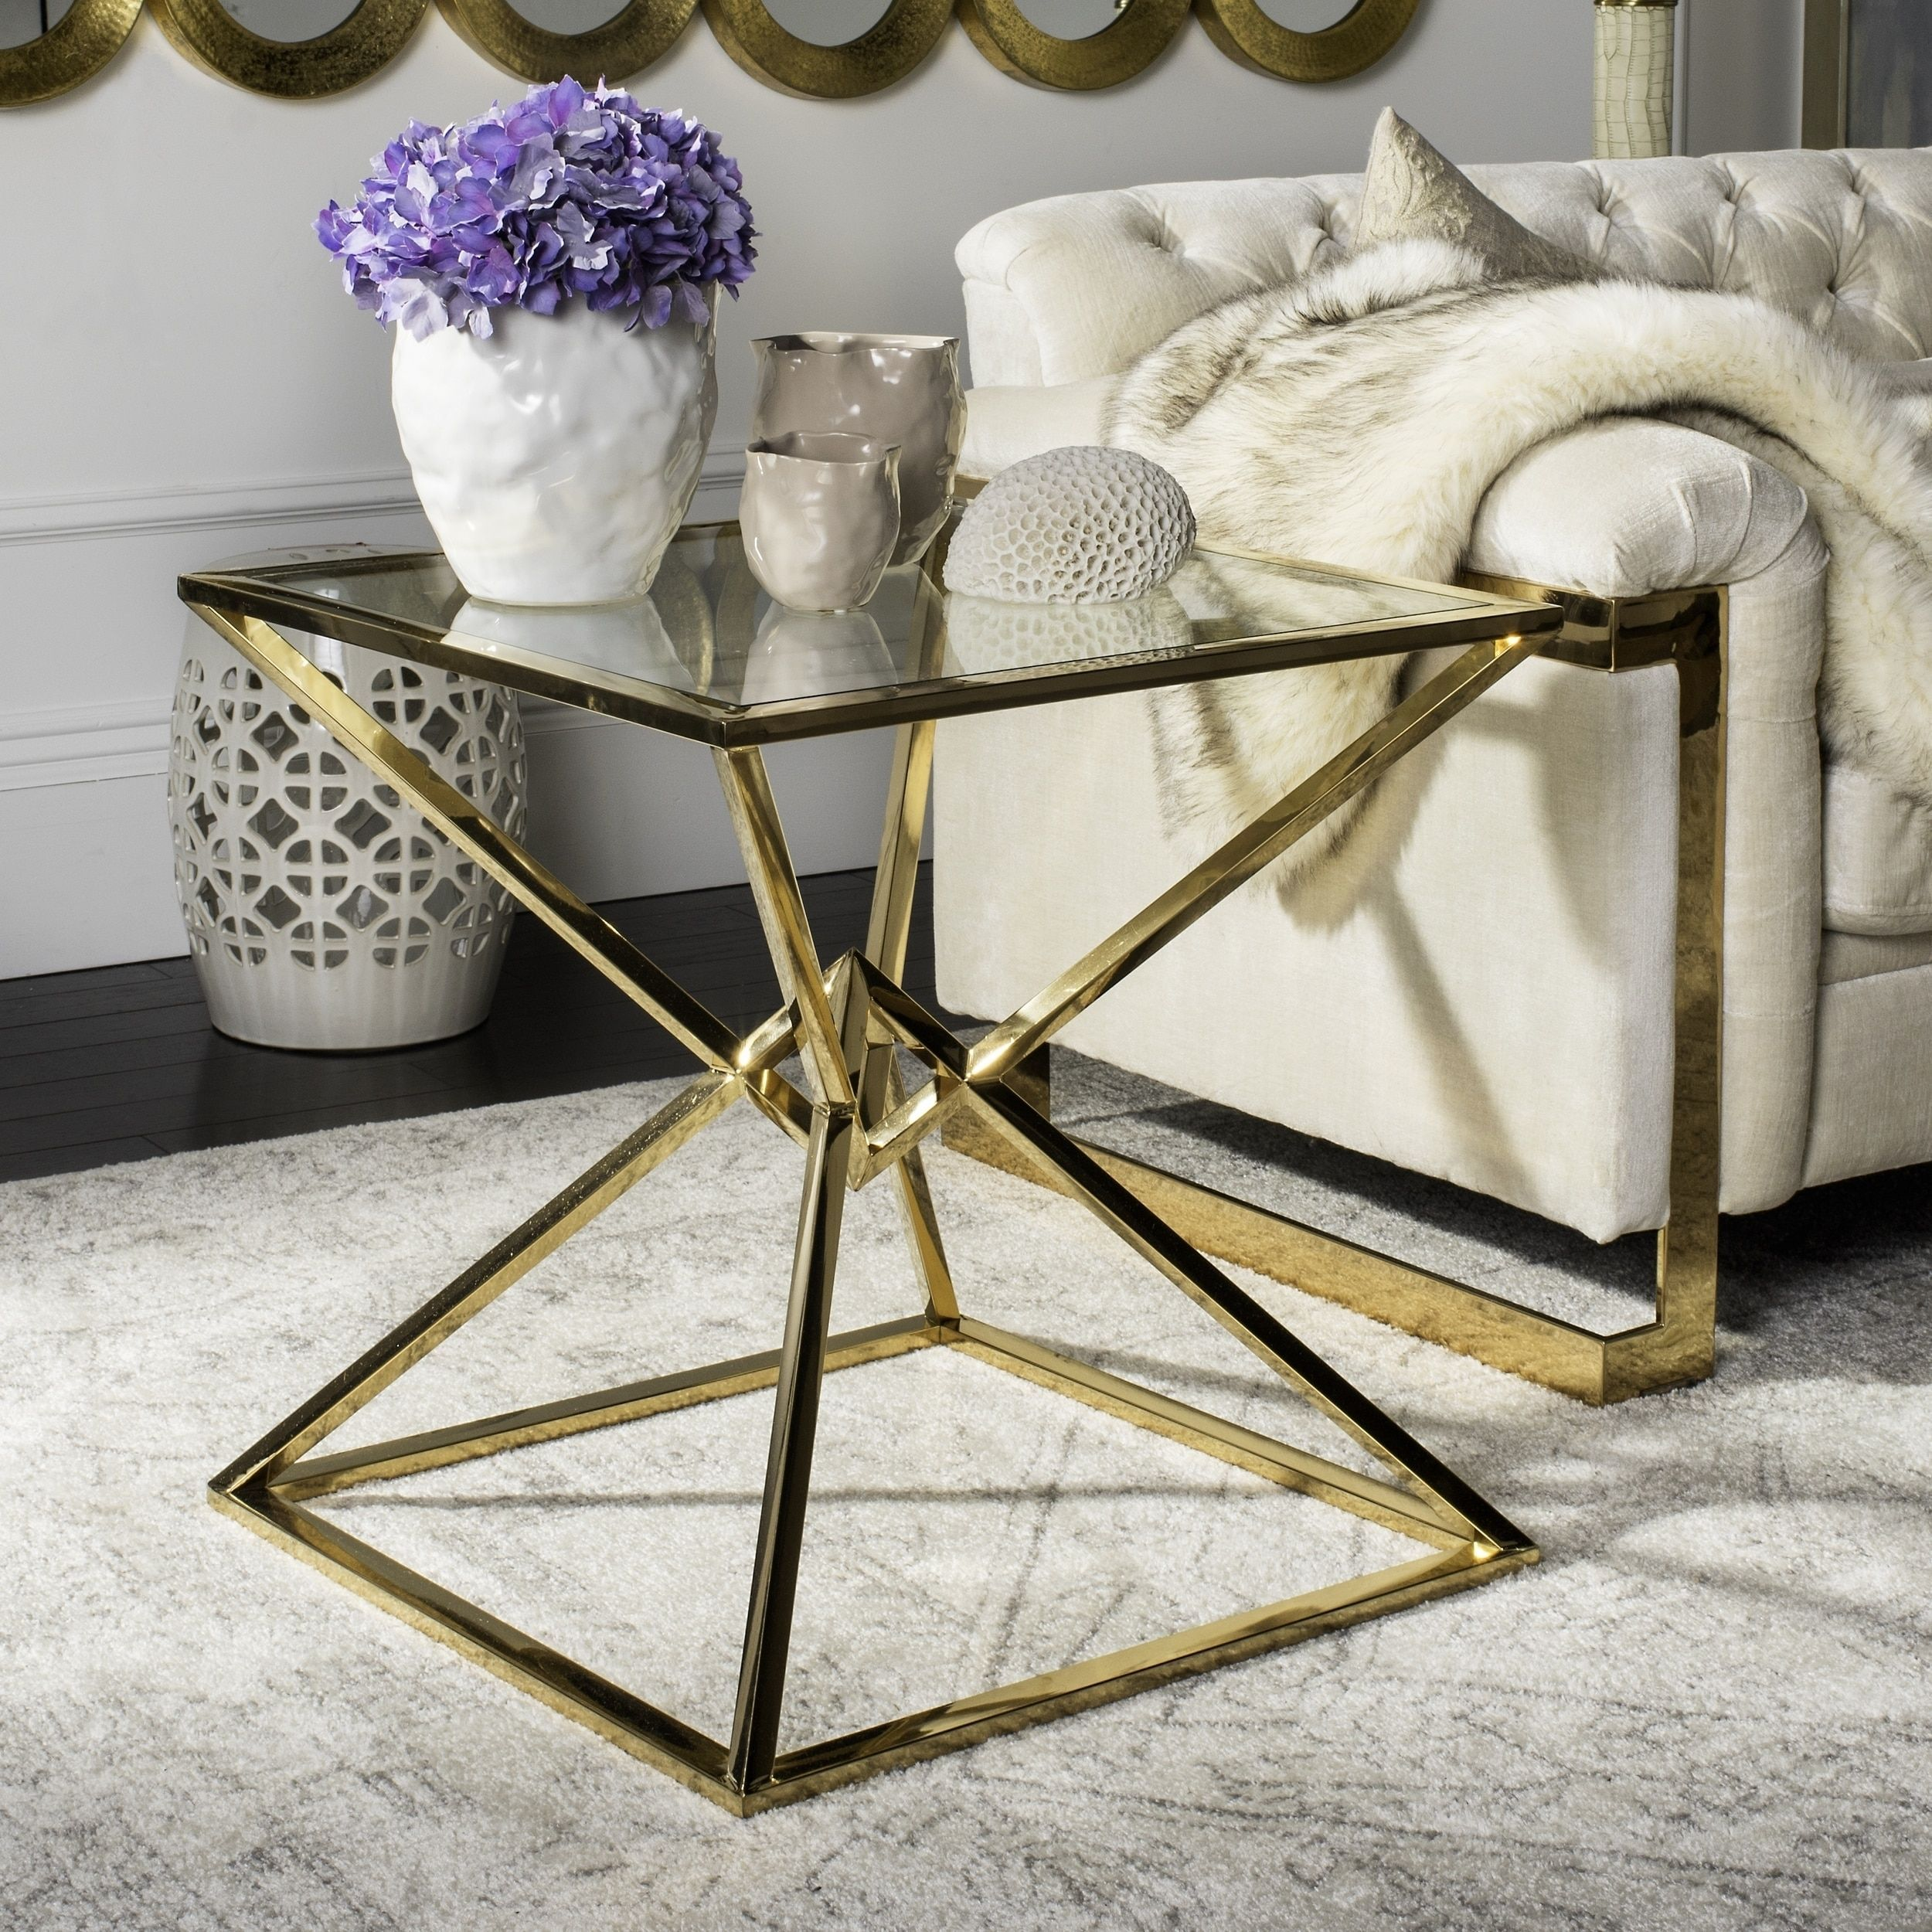 a3680d22e778a62a7cb590adaf5b8d12 Top Result 50 Best Of Gold and Glass Coffee Table Image 2017 Ksh4